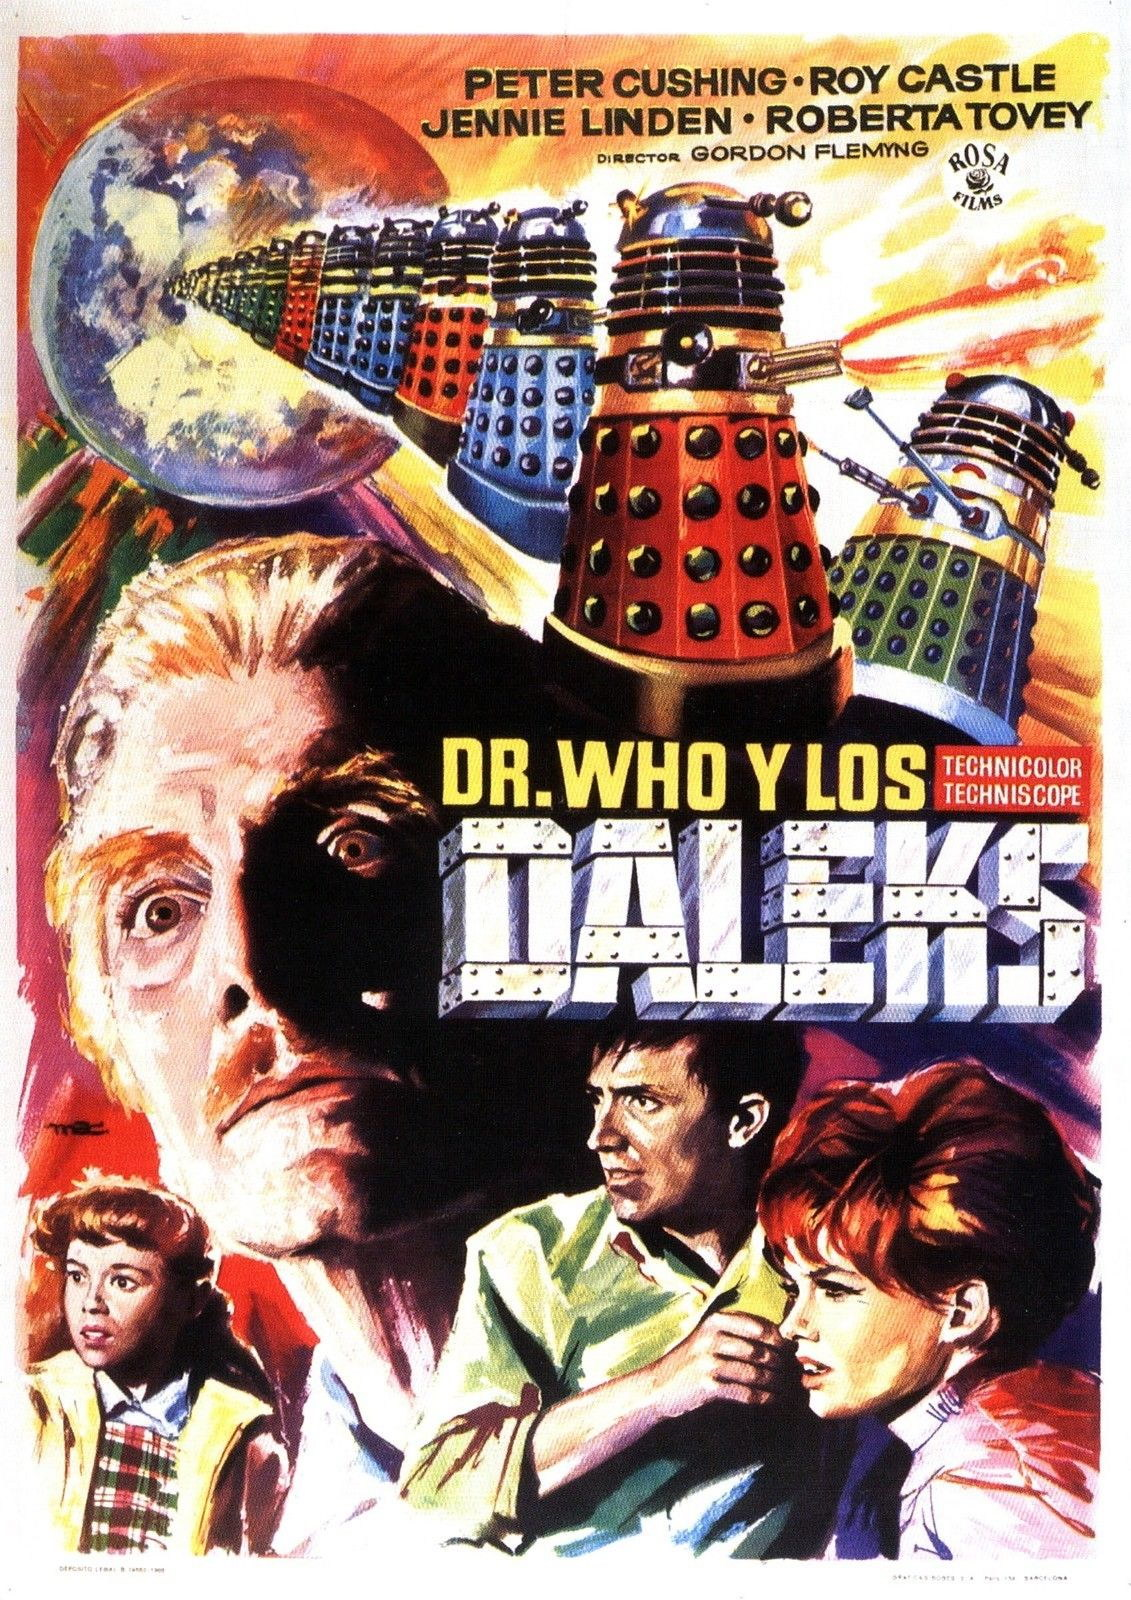 72840-DR-WHO-AND-THE-DALEKS-Movie-1965-FRAMED-CANVAS-PRINT-Toile